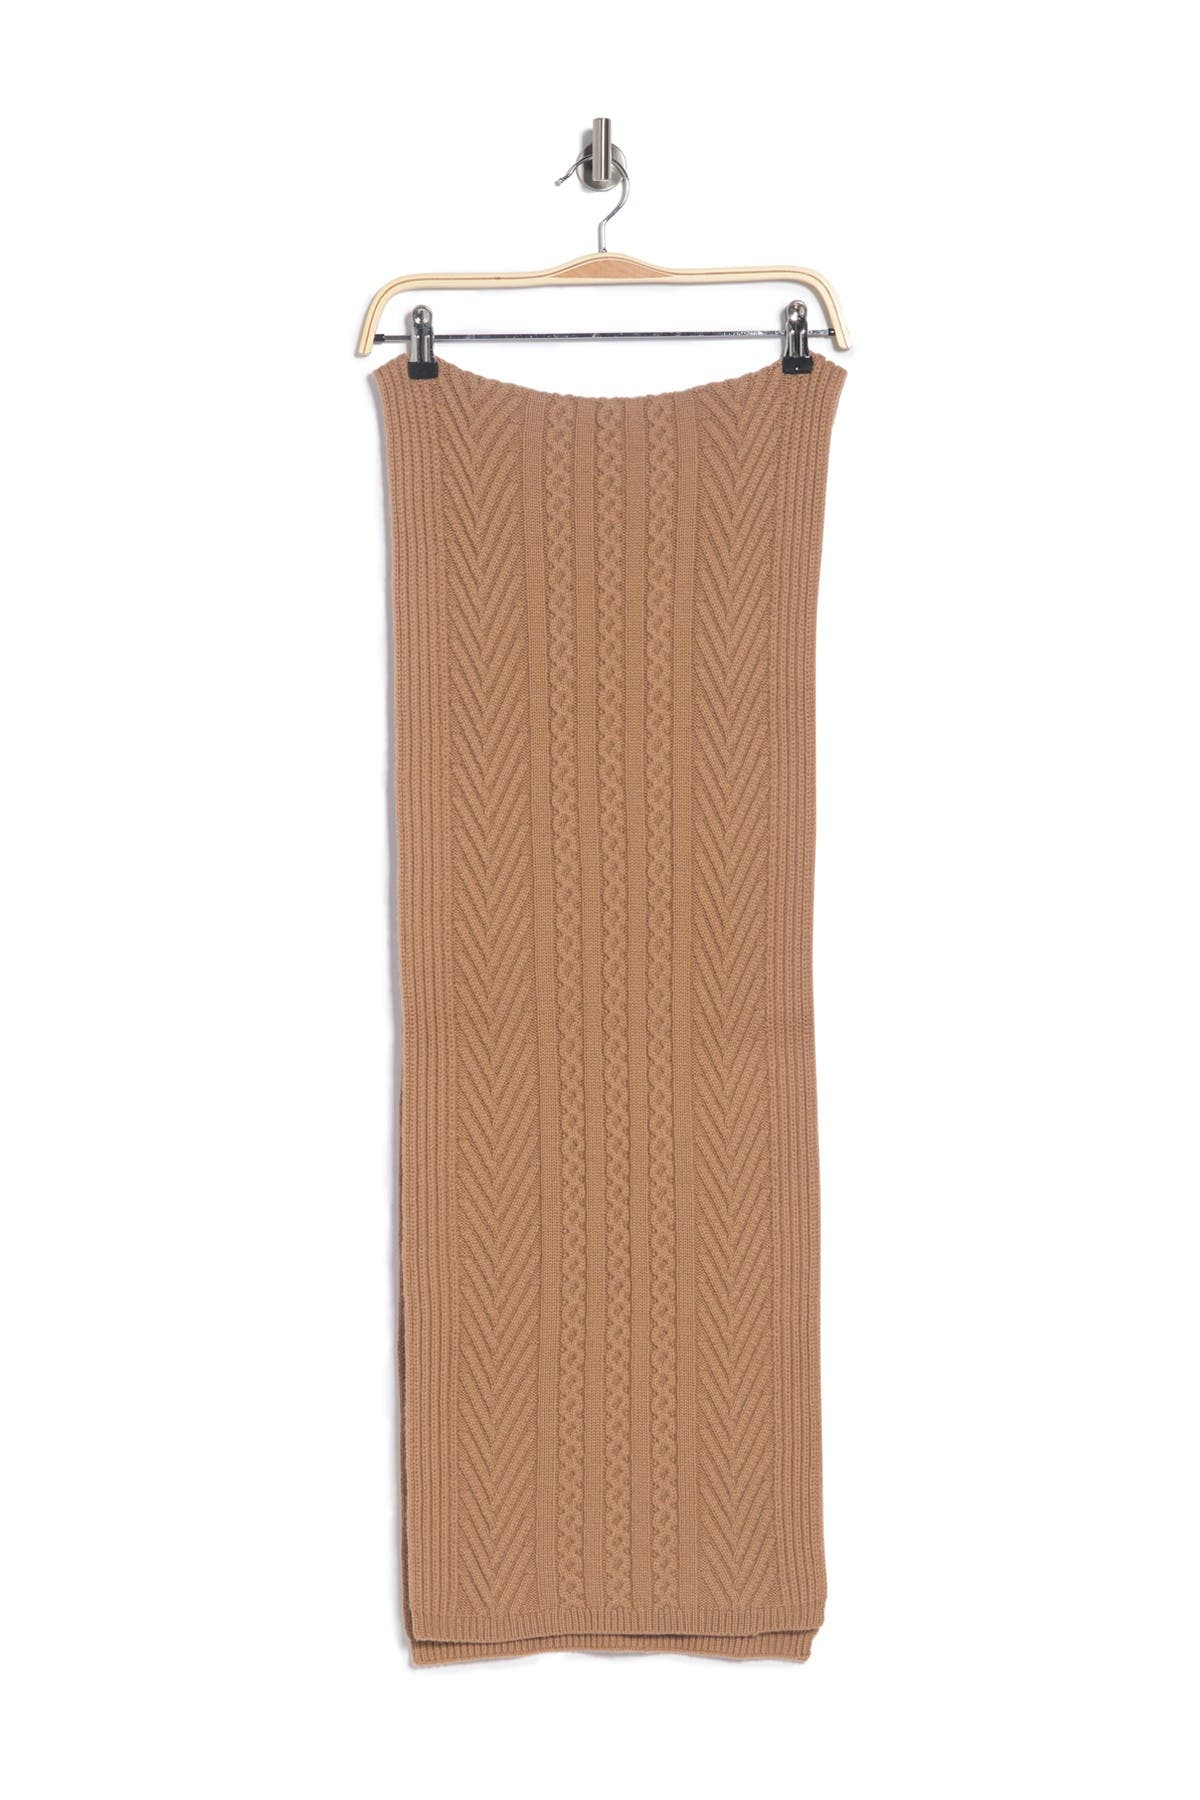 Image of Theory Ritten Textured Knit Cashmere Scarf